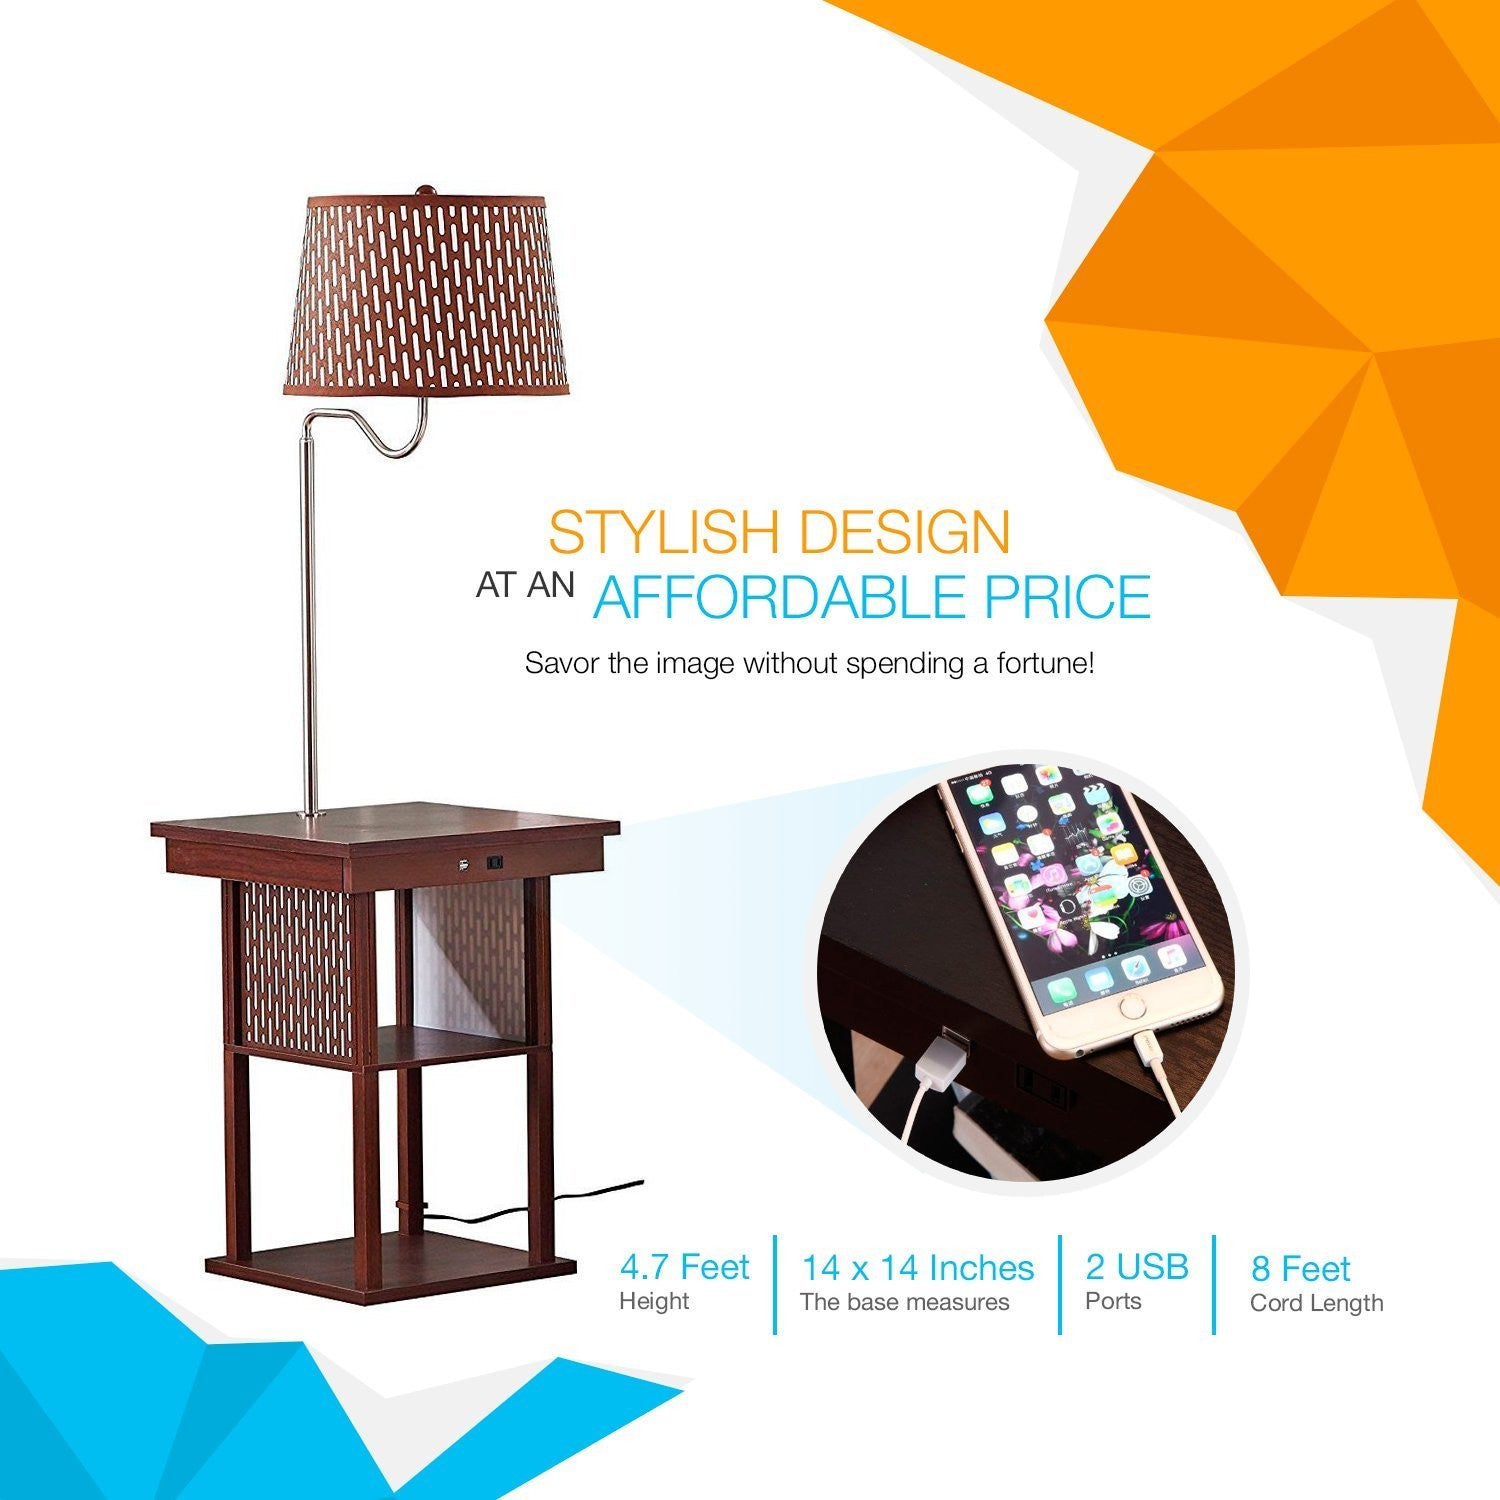 Brightech Store | Madison LED Floor Lamp U2013 Built In Black Table U2013 Outfitted  With 2 USB Ports U0026 US Standard Outlet For Electronics U2013 Includes  Brightechu0027s ...